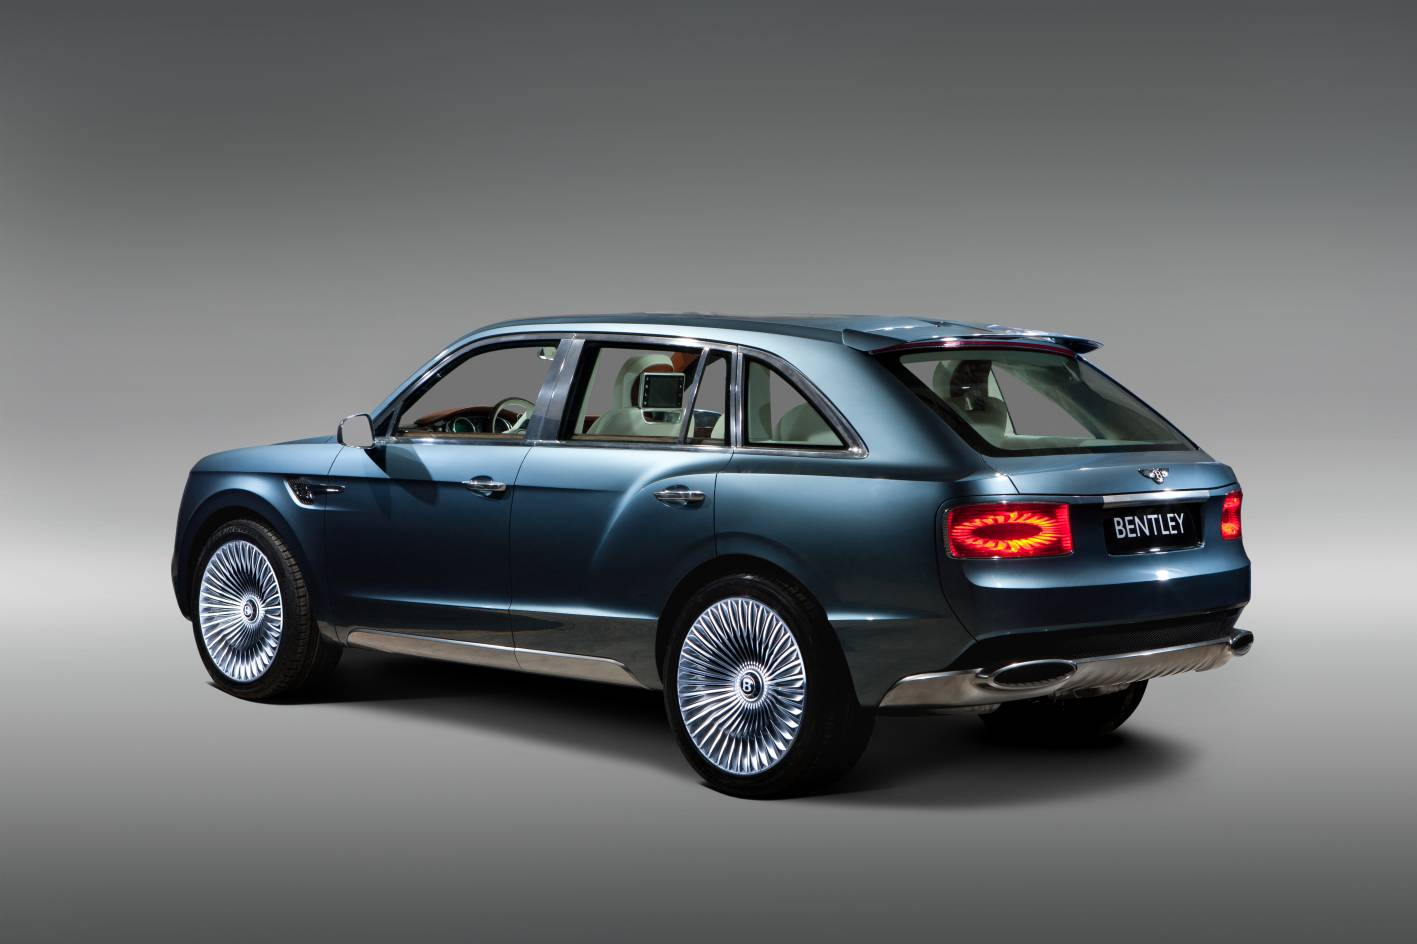 Bentley cars news bentley exp 9 f concept suv for The bentley